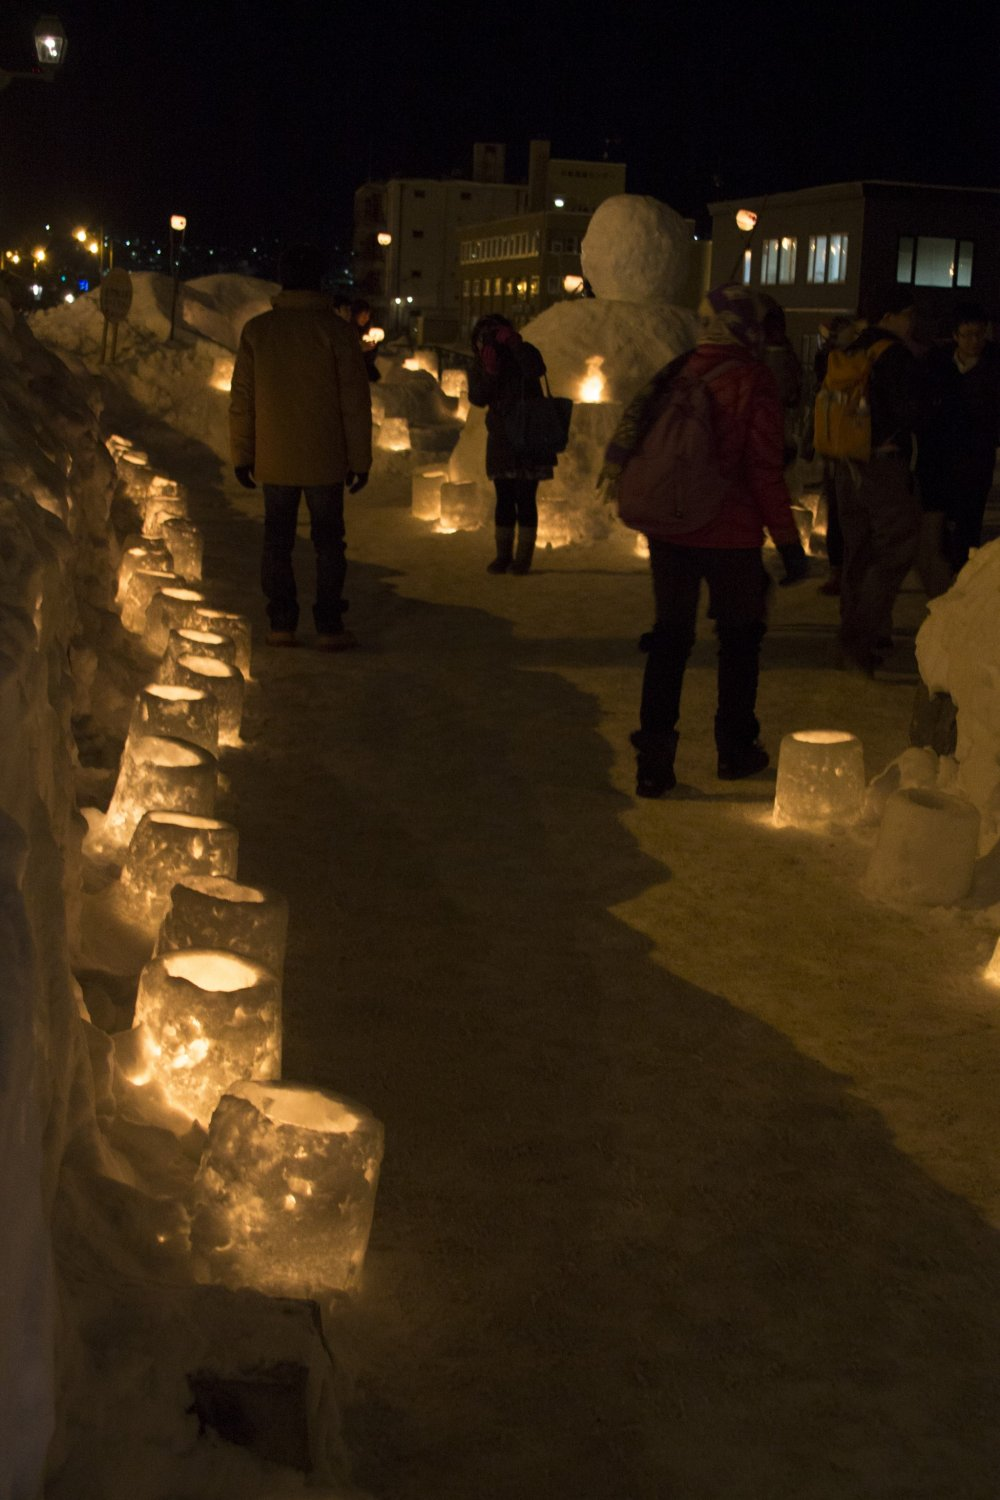 Candlelit path leading to a giant snowman